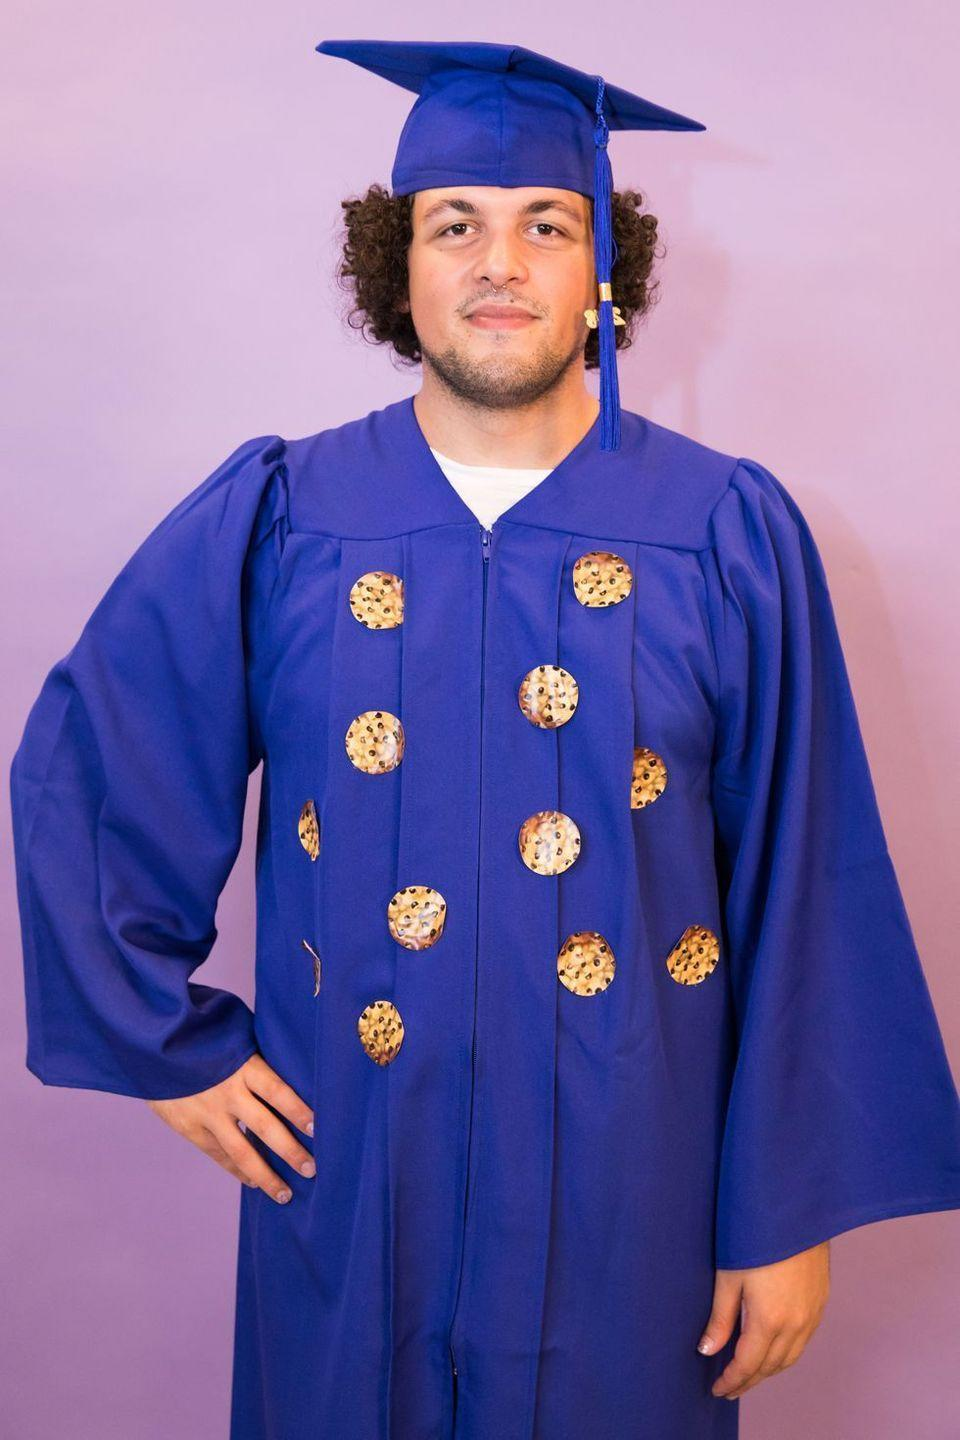 """<p>Be the cleverest person at the party in this Smart Cookie ensemble, which only requires you to adhere a dozen cookie cut-outs to an old graduation gown. </p><p><a class=""""link rapid-noclick-resp"""" href=""""https://www.amazon.com/GGS-Unisex-Graduation-Tassel-Bachelor/dp/B07CG82NL2/?tag=syn-yahoo-20&ascsubtag=%5Bartid%7C10070.g.28171554%5Bsrc%7Cyahoo-us"""" rel=""""nofollow noopener"""" target=""""_blank"""" data-ylk=""""slk:SHOP CAP AND GOWN"""">SHOP CAP AND GOWN</a></p><p><strong>RELATED:</strong> <a href=""""https://www.womansday.com/style/fashion/g28680393/punny-halloween-costume-ideas/"""" rel=""""nofollow noopener"""" target=""""_blank"""" data-ylk=""""slk:26 Punny Halloween Costumes That Are So Funny"""" class=""""link rapid-noclick-resp"""">26 Punny Halloween Costumes That Are So Funny</a></p>"""